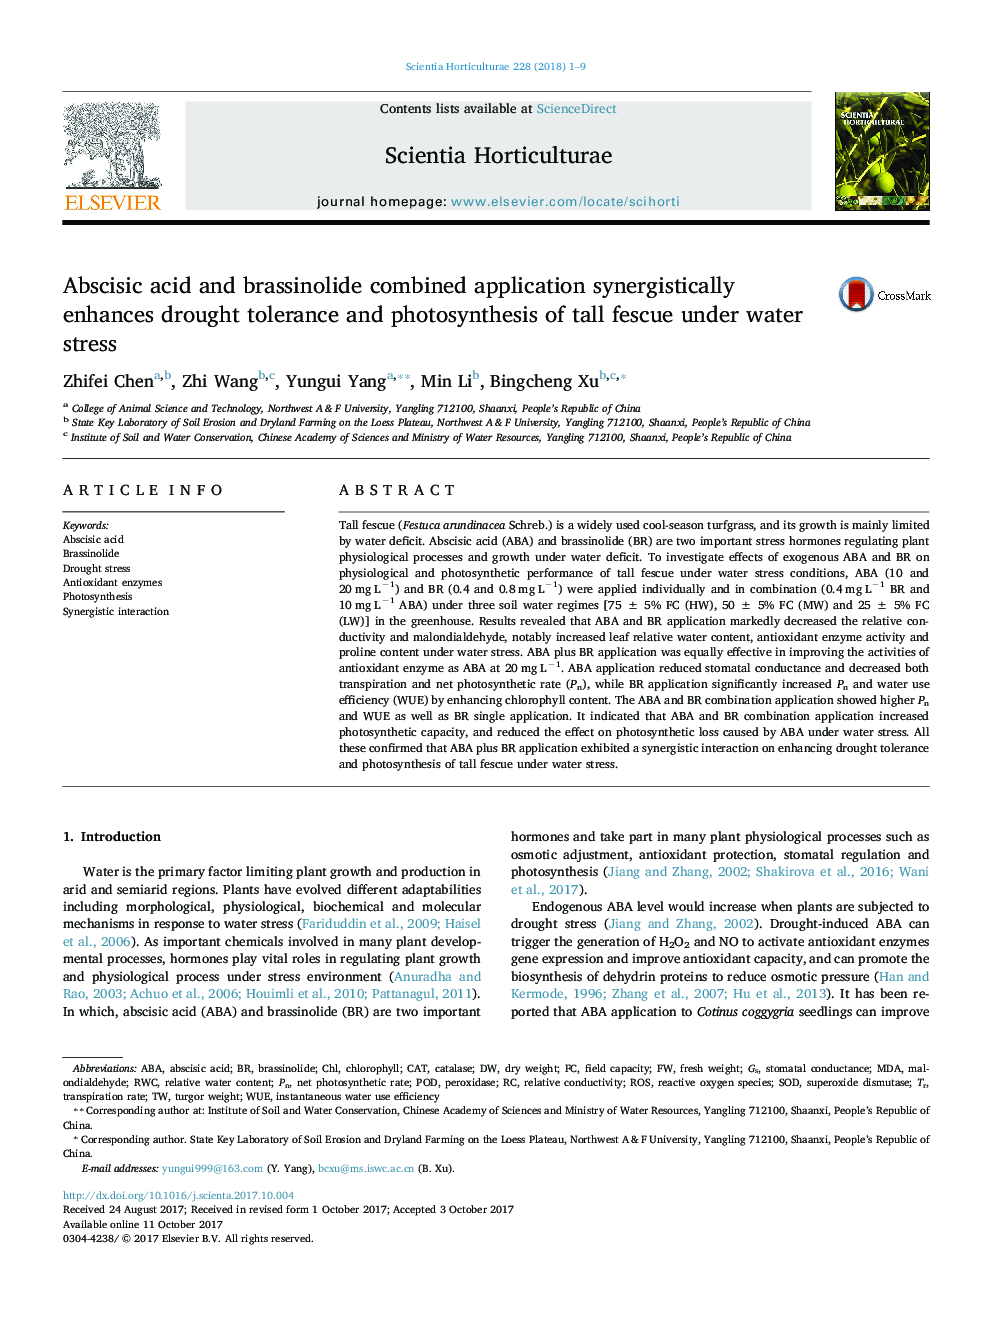 Abscisic acid and brassinolide combined application synergistically enhances drought tolerance and photosynthesis of tall fescue under water stress